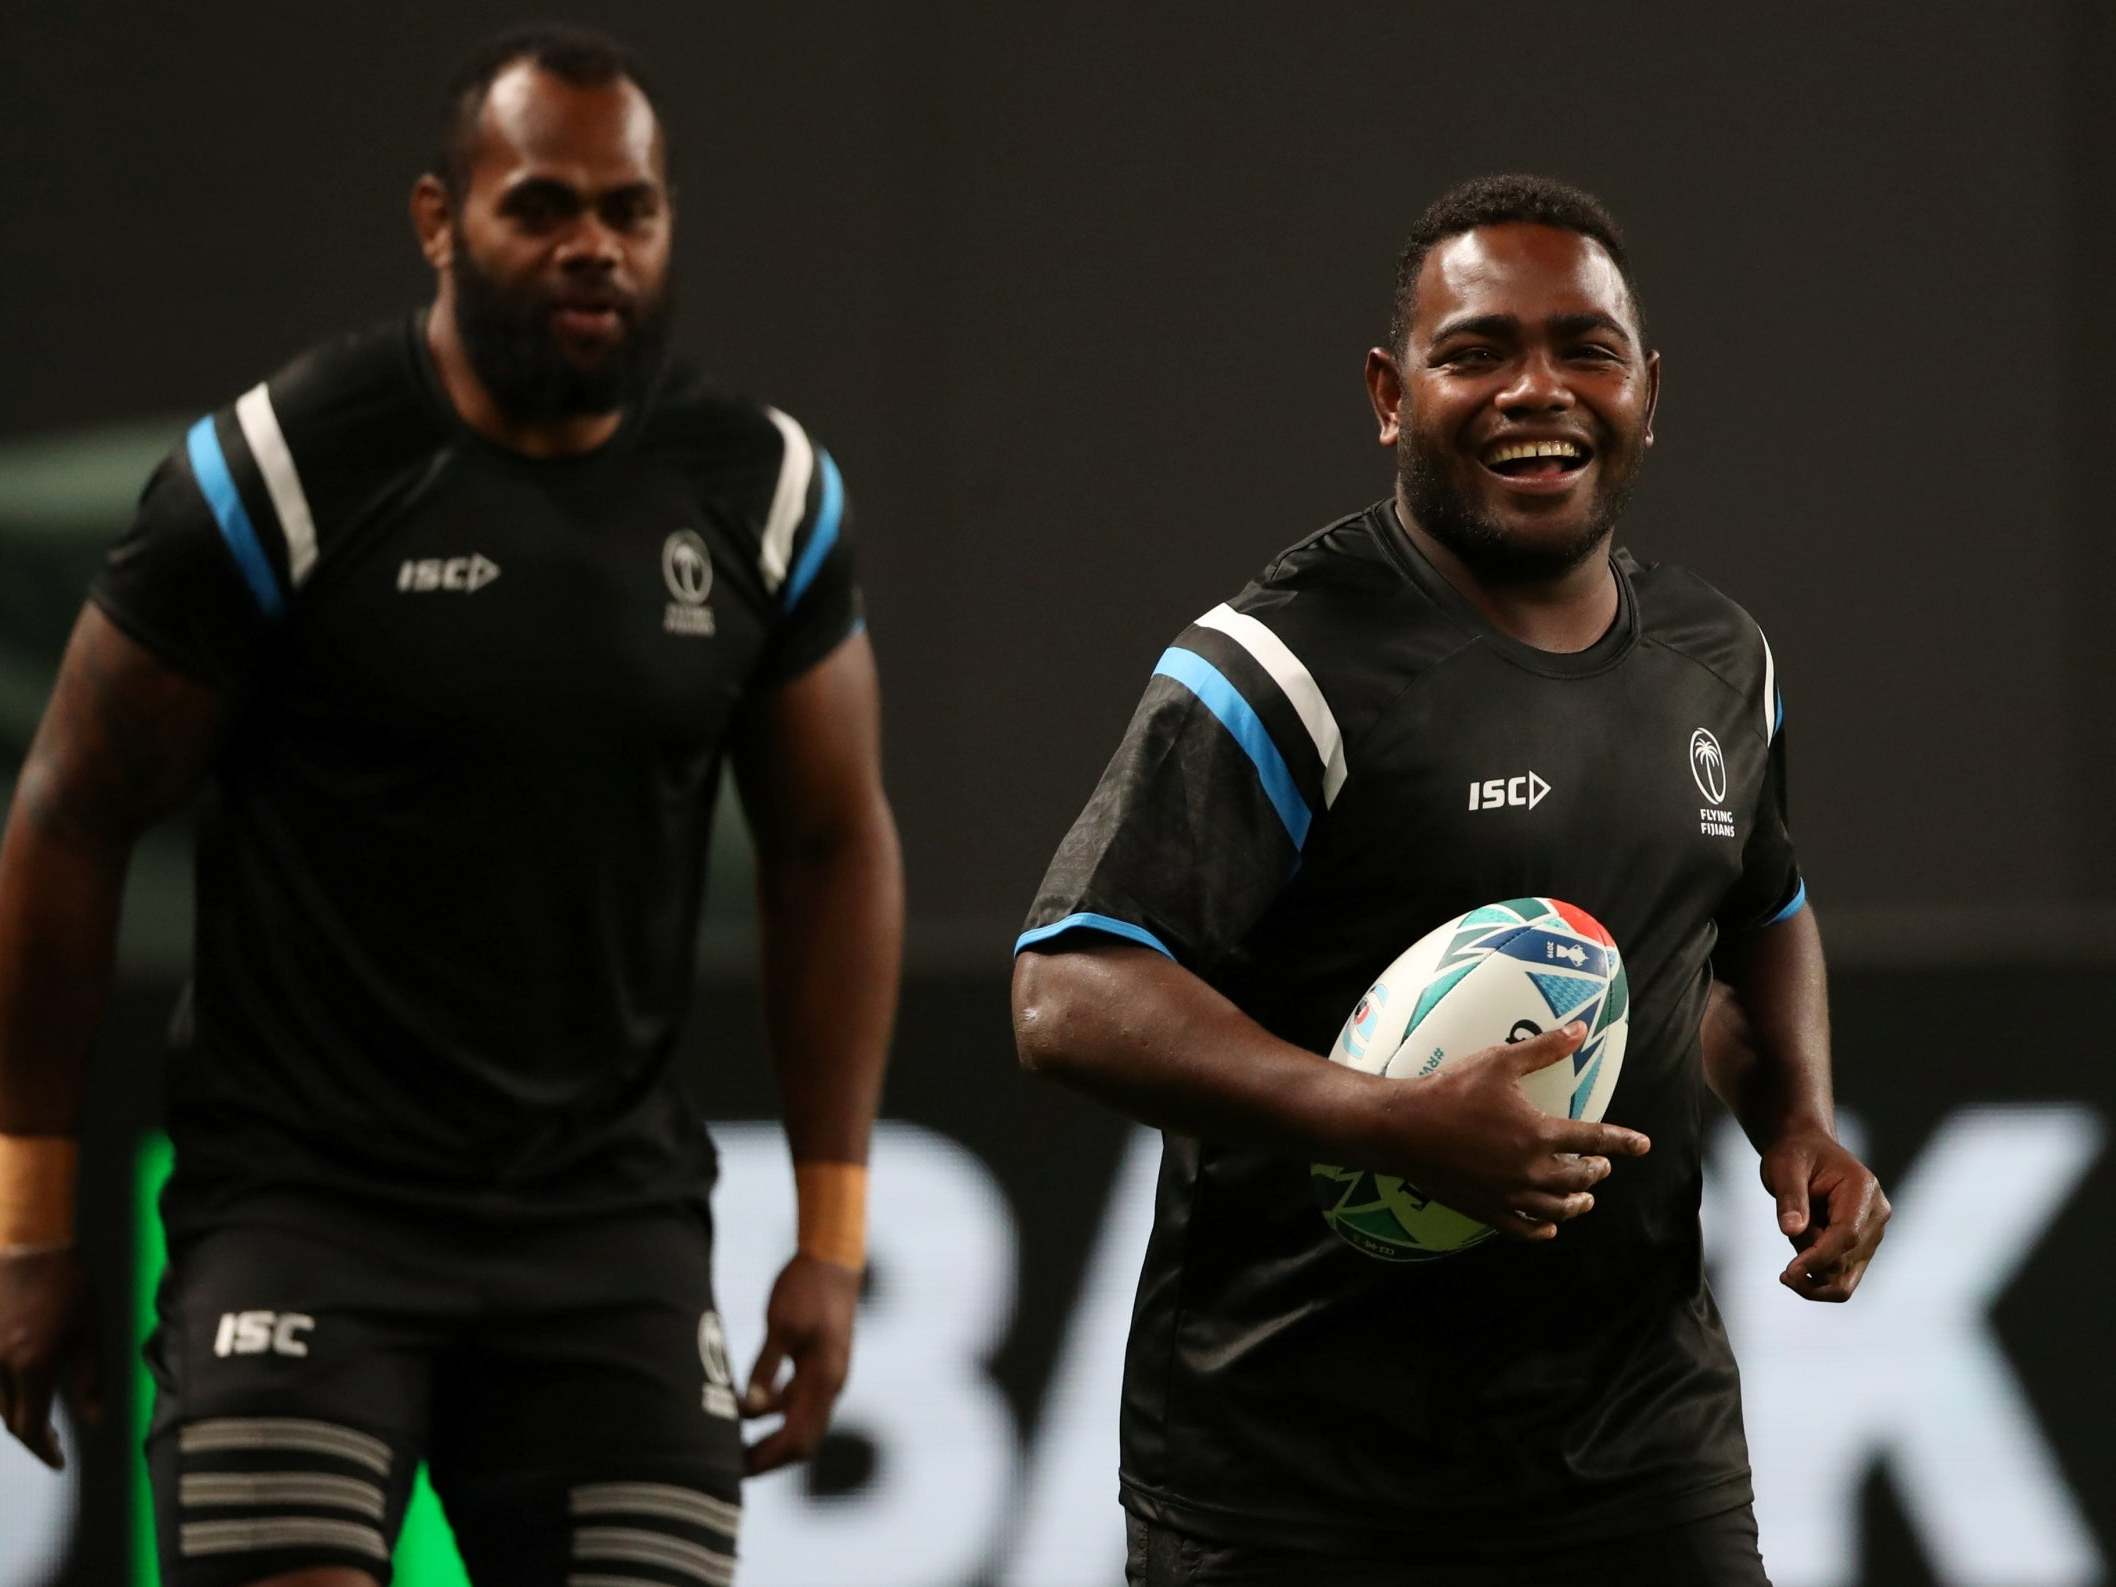 Australia vs Fiji live stream: How to watch Rugby World Cup game on TV and online